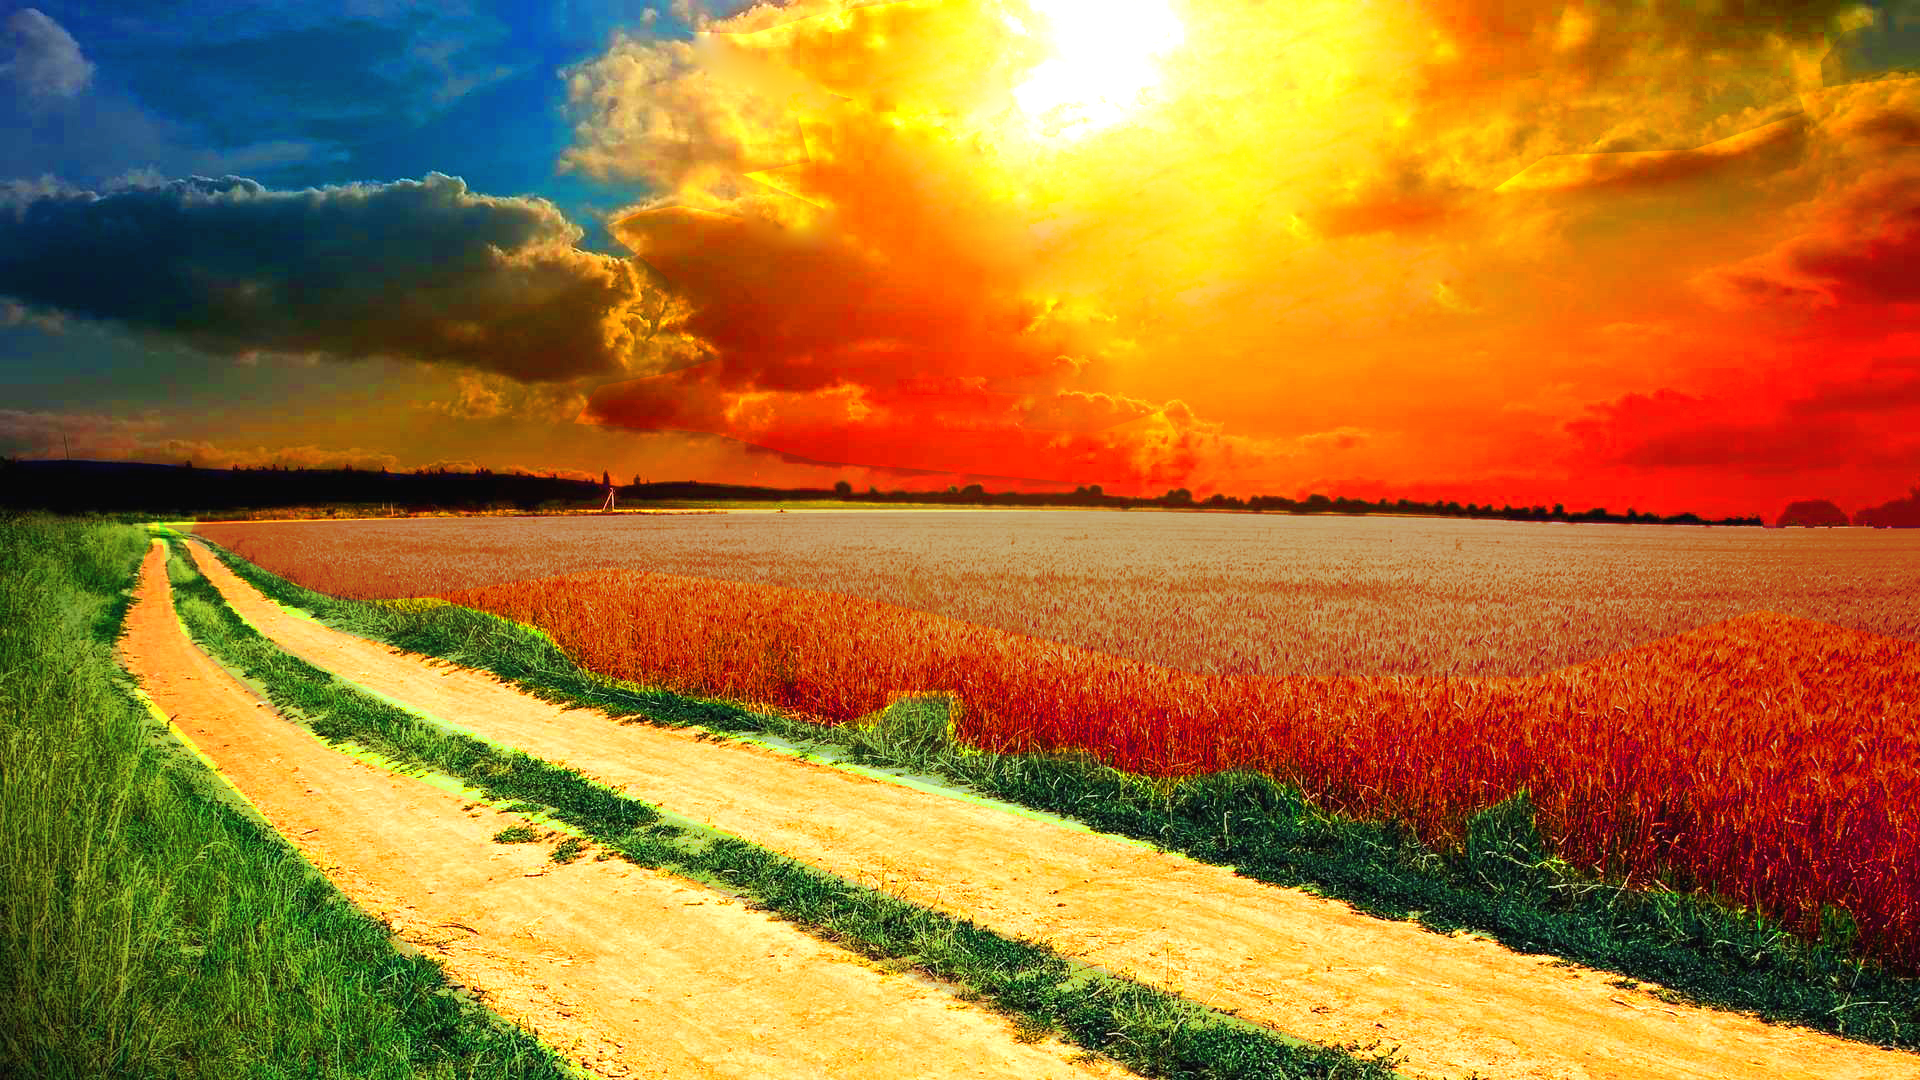 Awesome-Sunshine-from-the-Clouds-on-the-Wheat-Field-1920x1080-Need-iPhone-S-Plus-wallpaper-wpc5802419